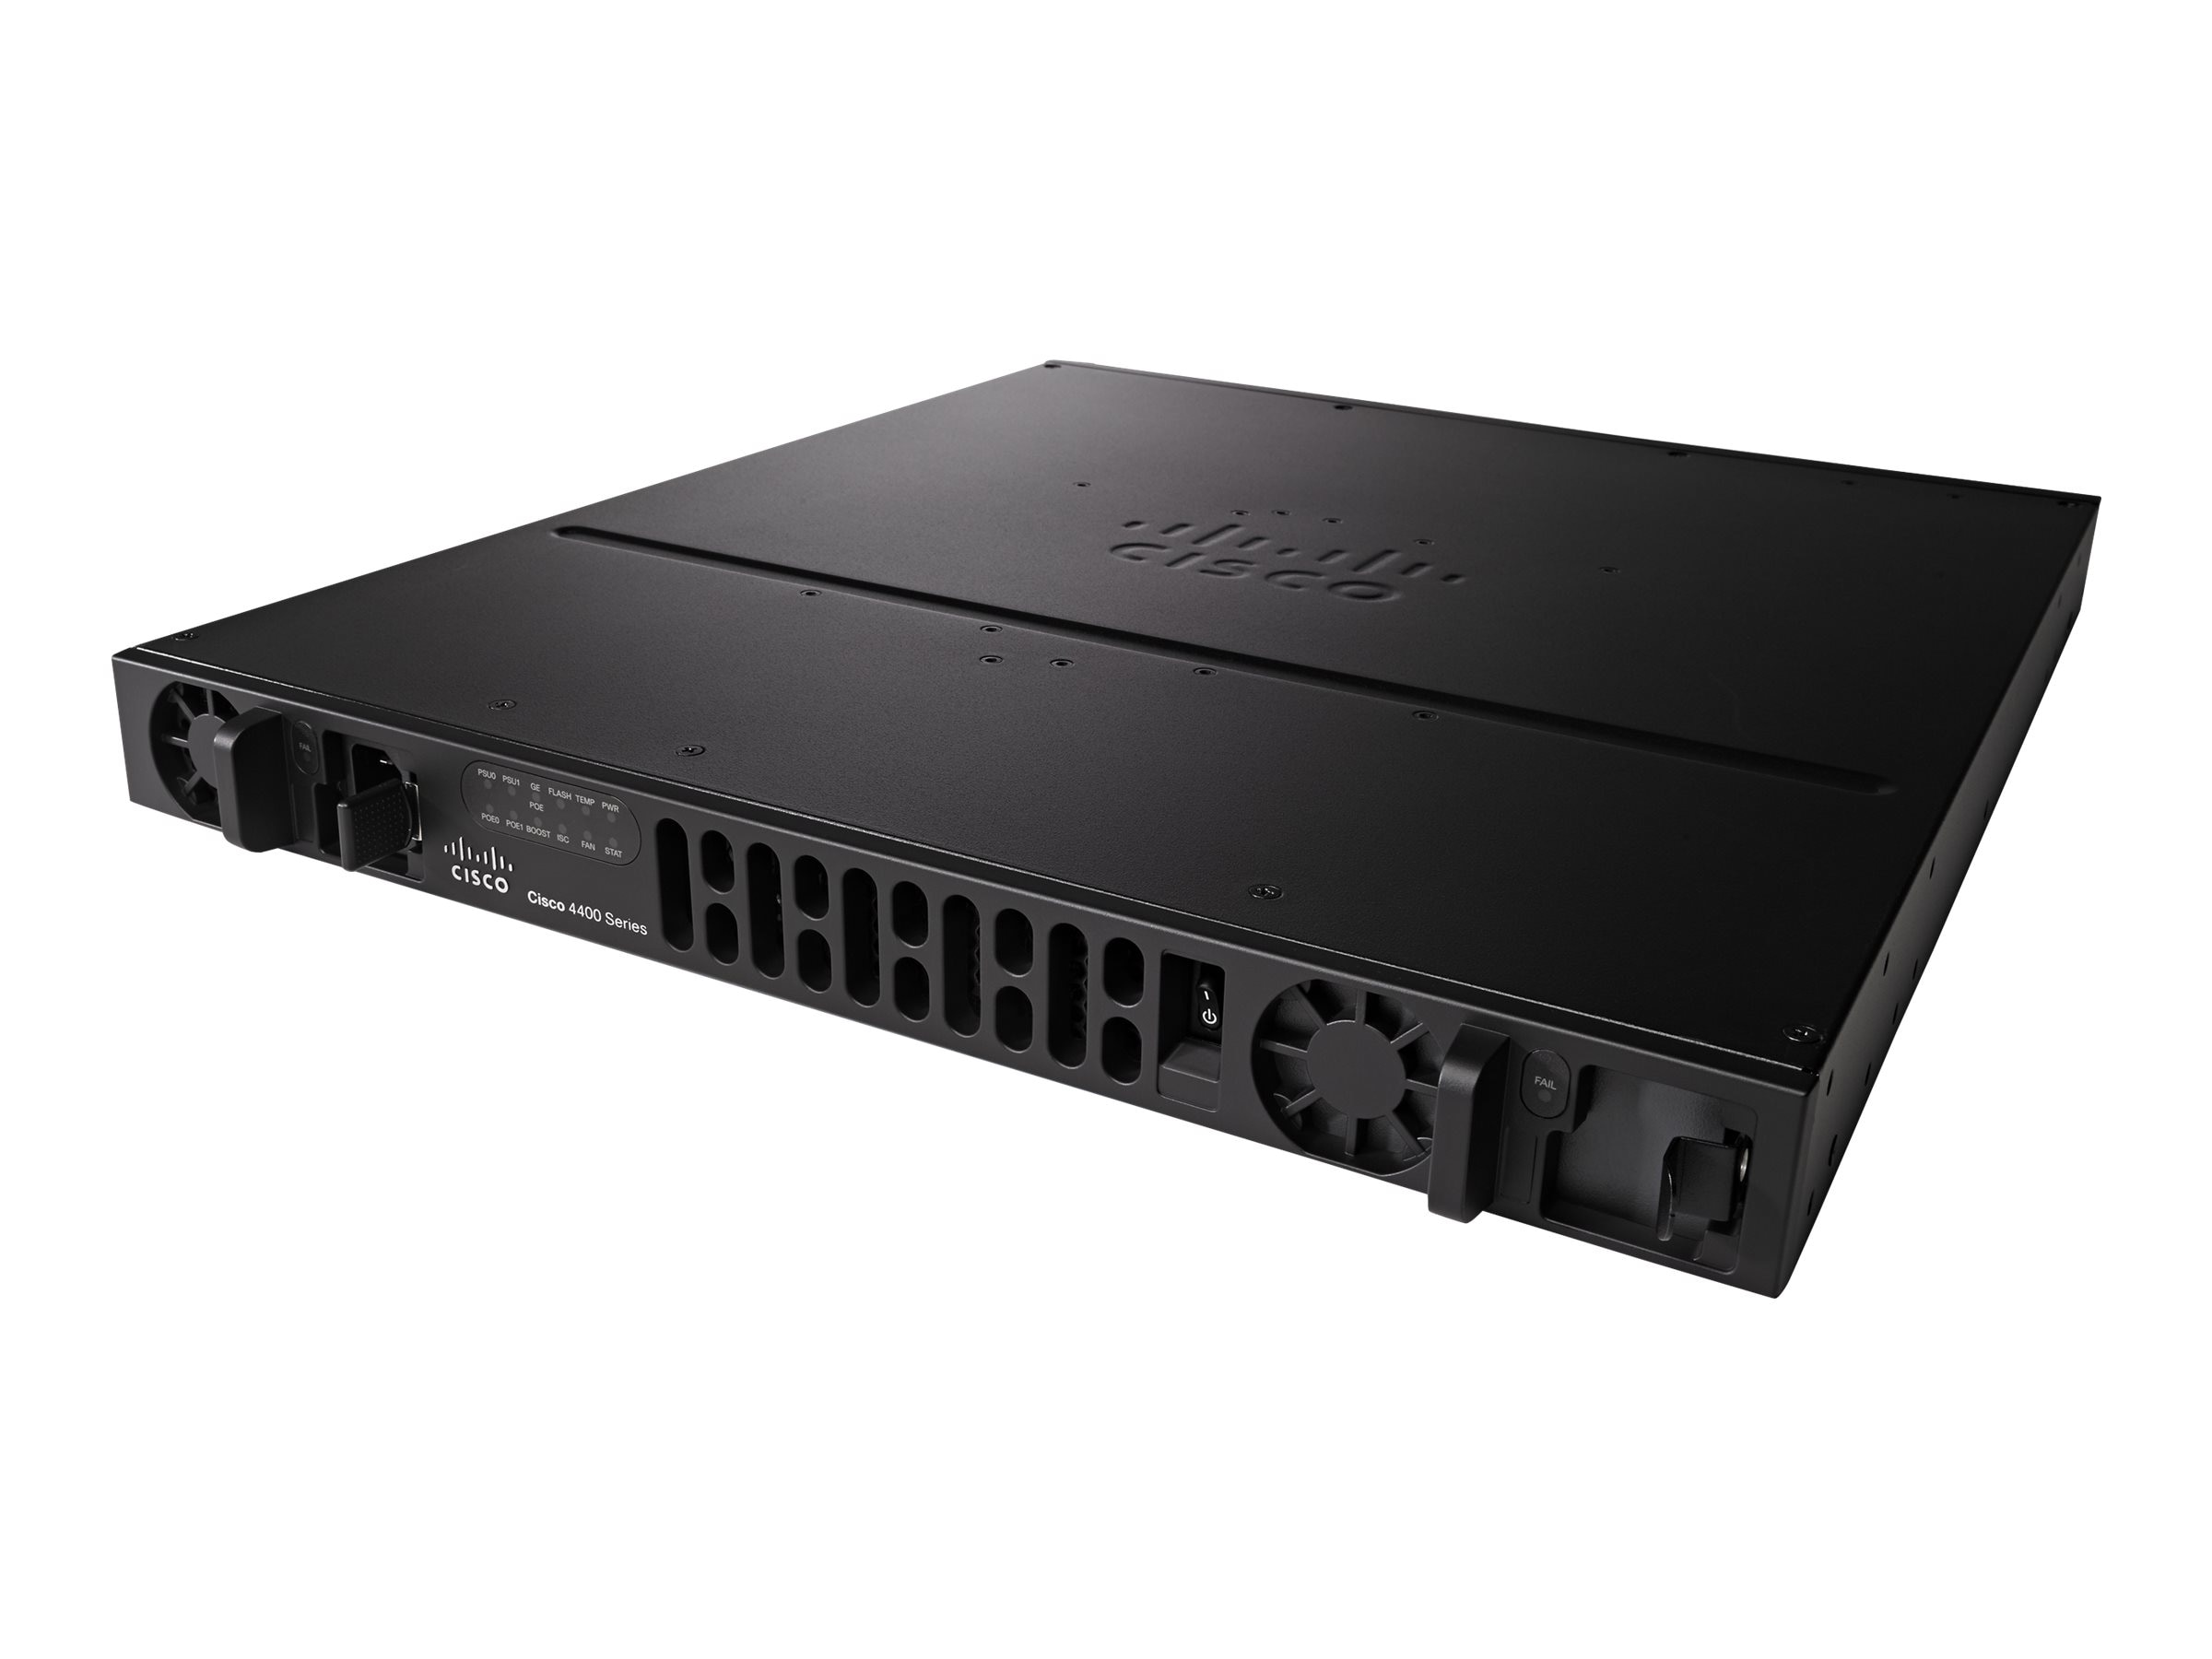 Refurb. Cisco ISR 4431 Security Bndl w SEC License